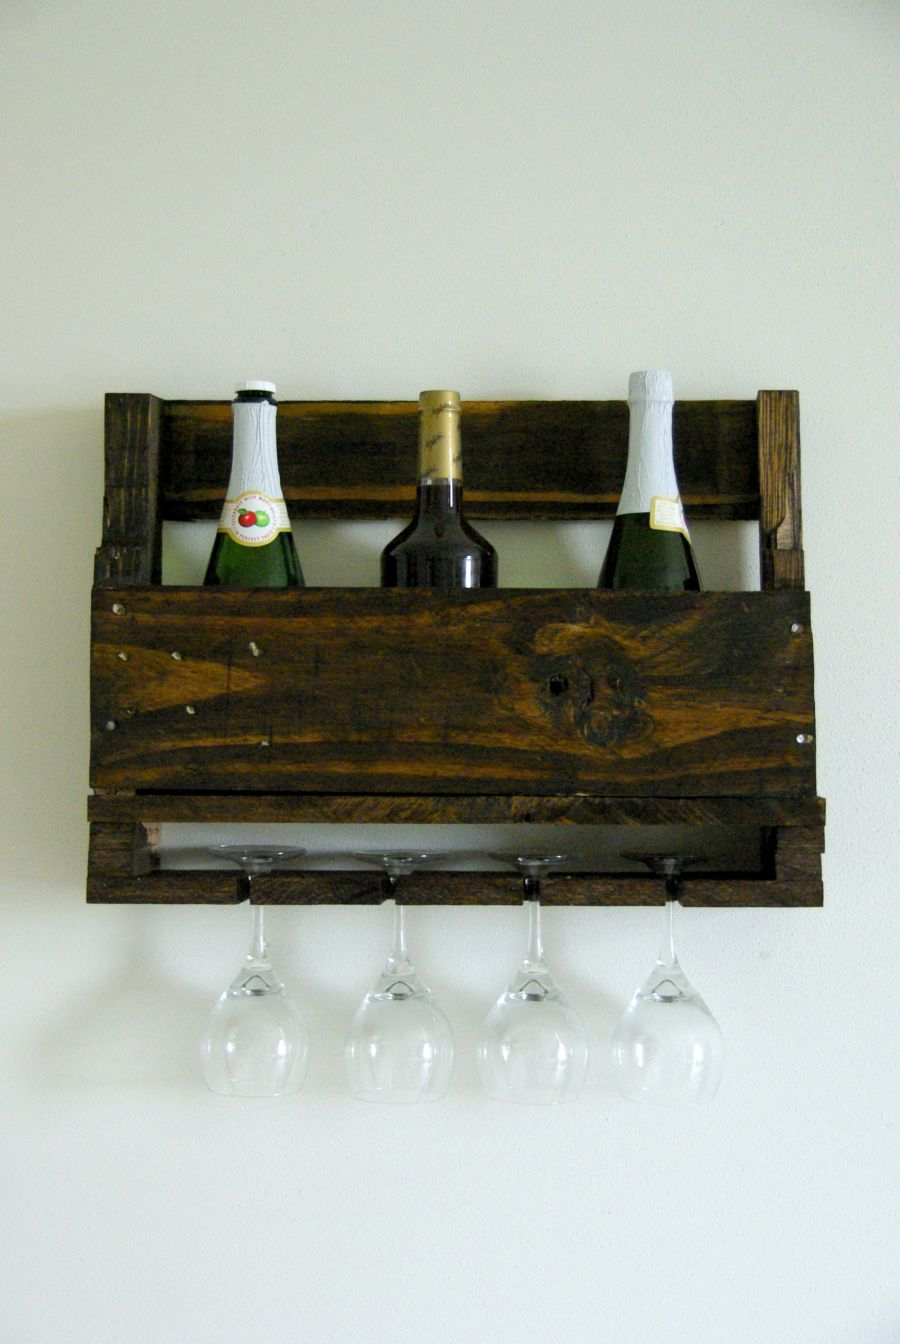 Design Diy Wine Rack diy wall mounted wine racks made of pallets how to hang